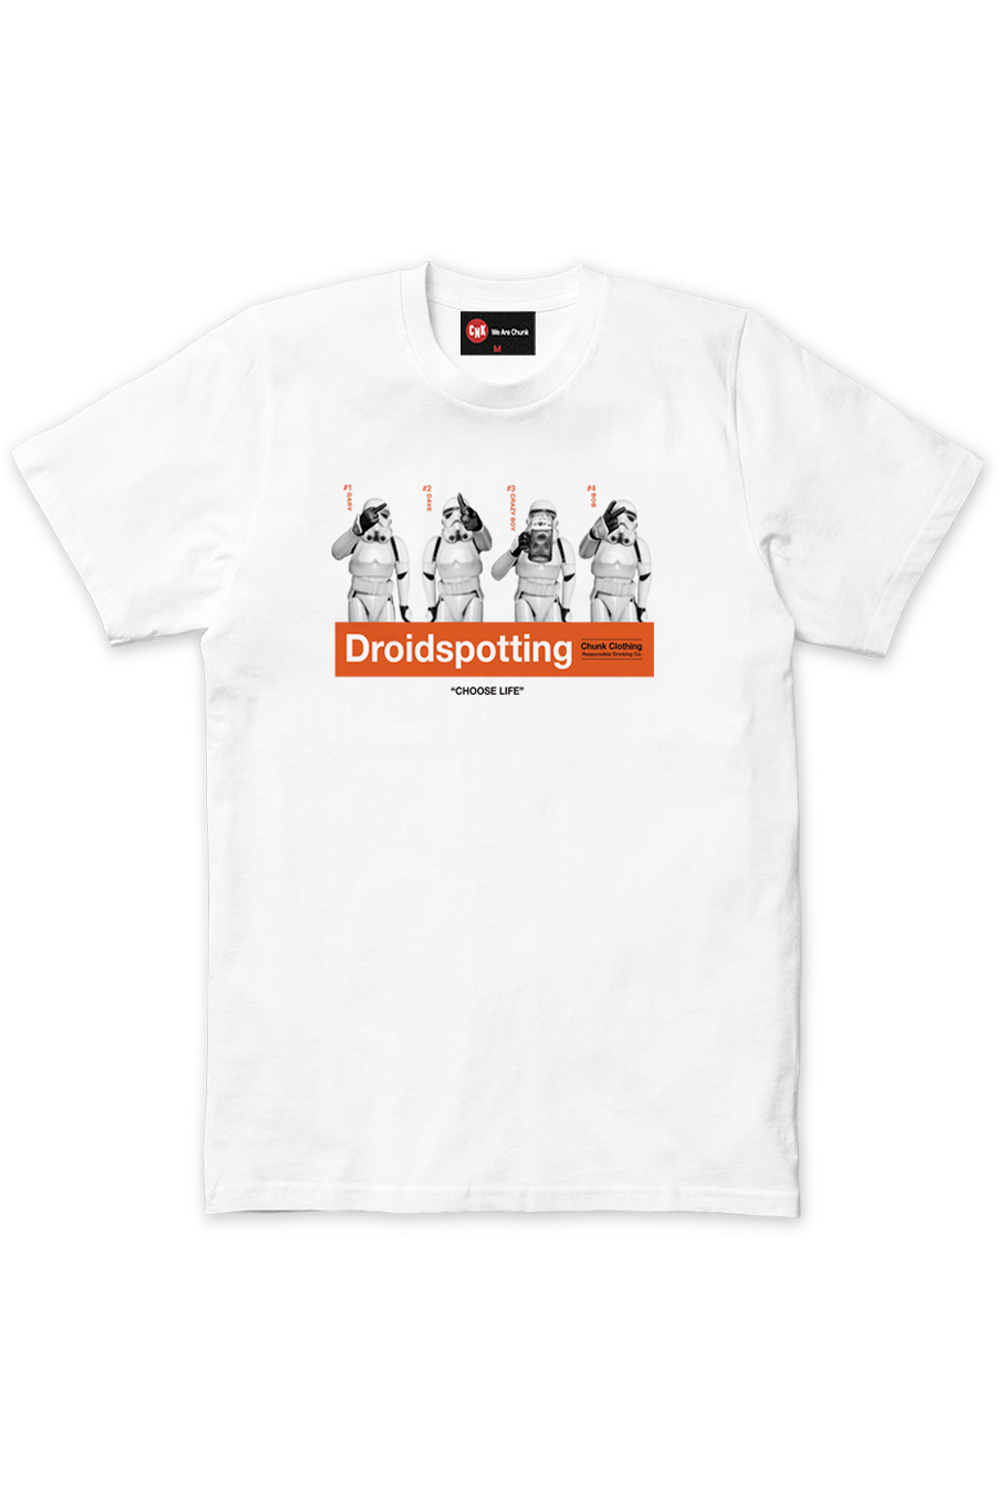 Chunk-Mens-Official-Star-Wars-Droidspotting-T-Shirt-Crew-Neck-Stormtrooper-Tee thumbnail 3